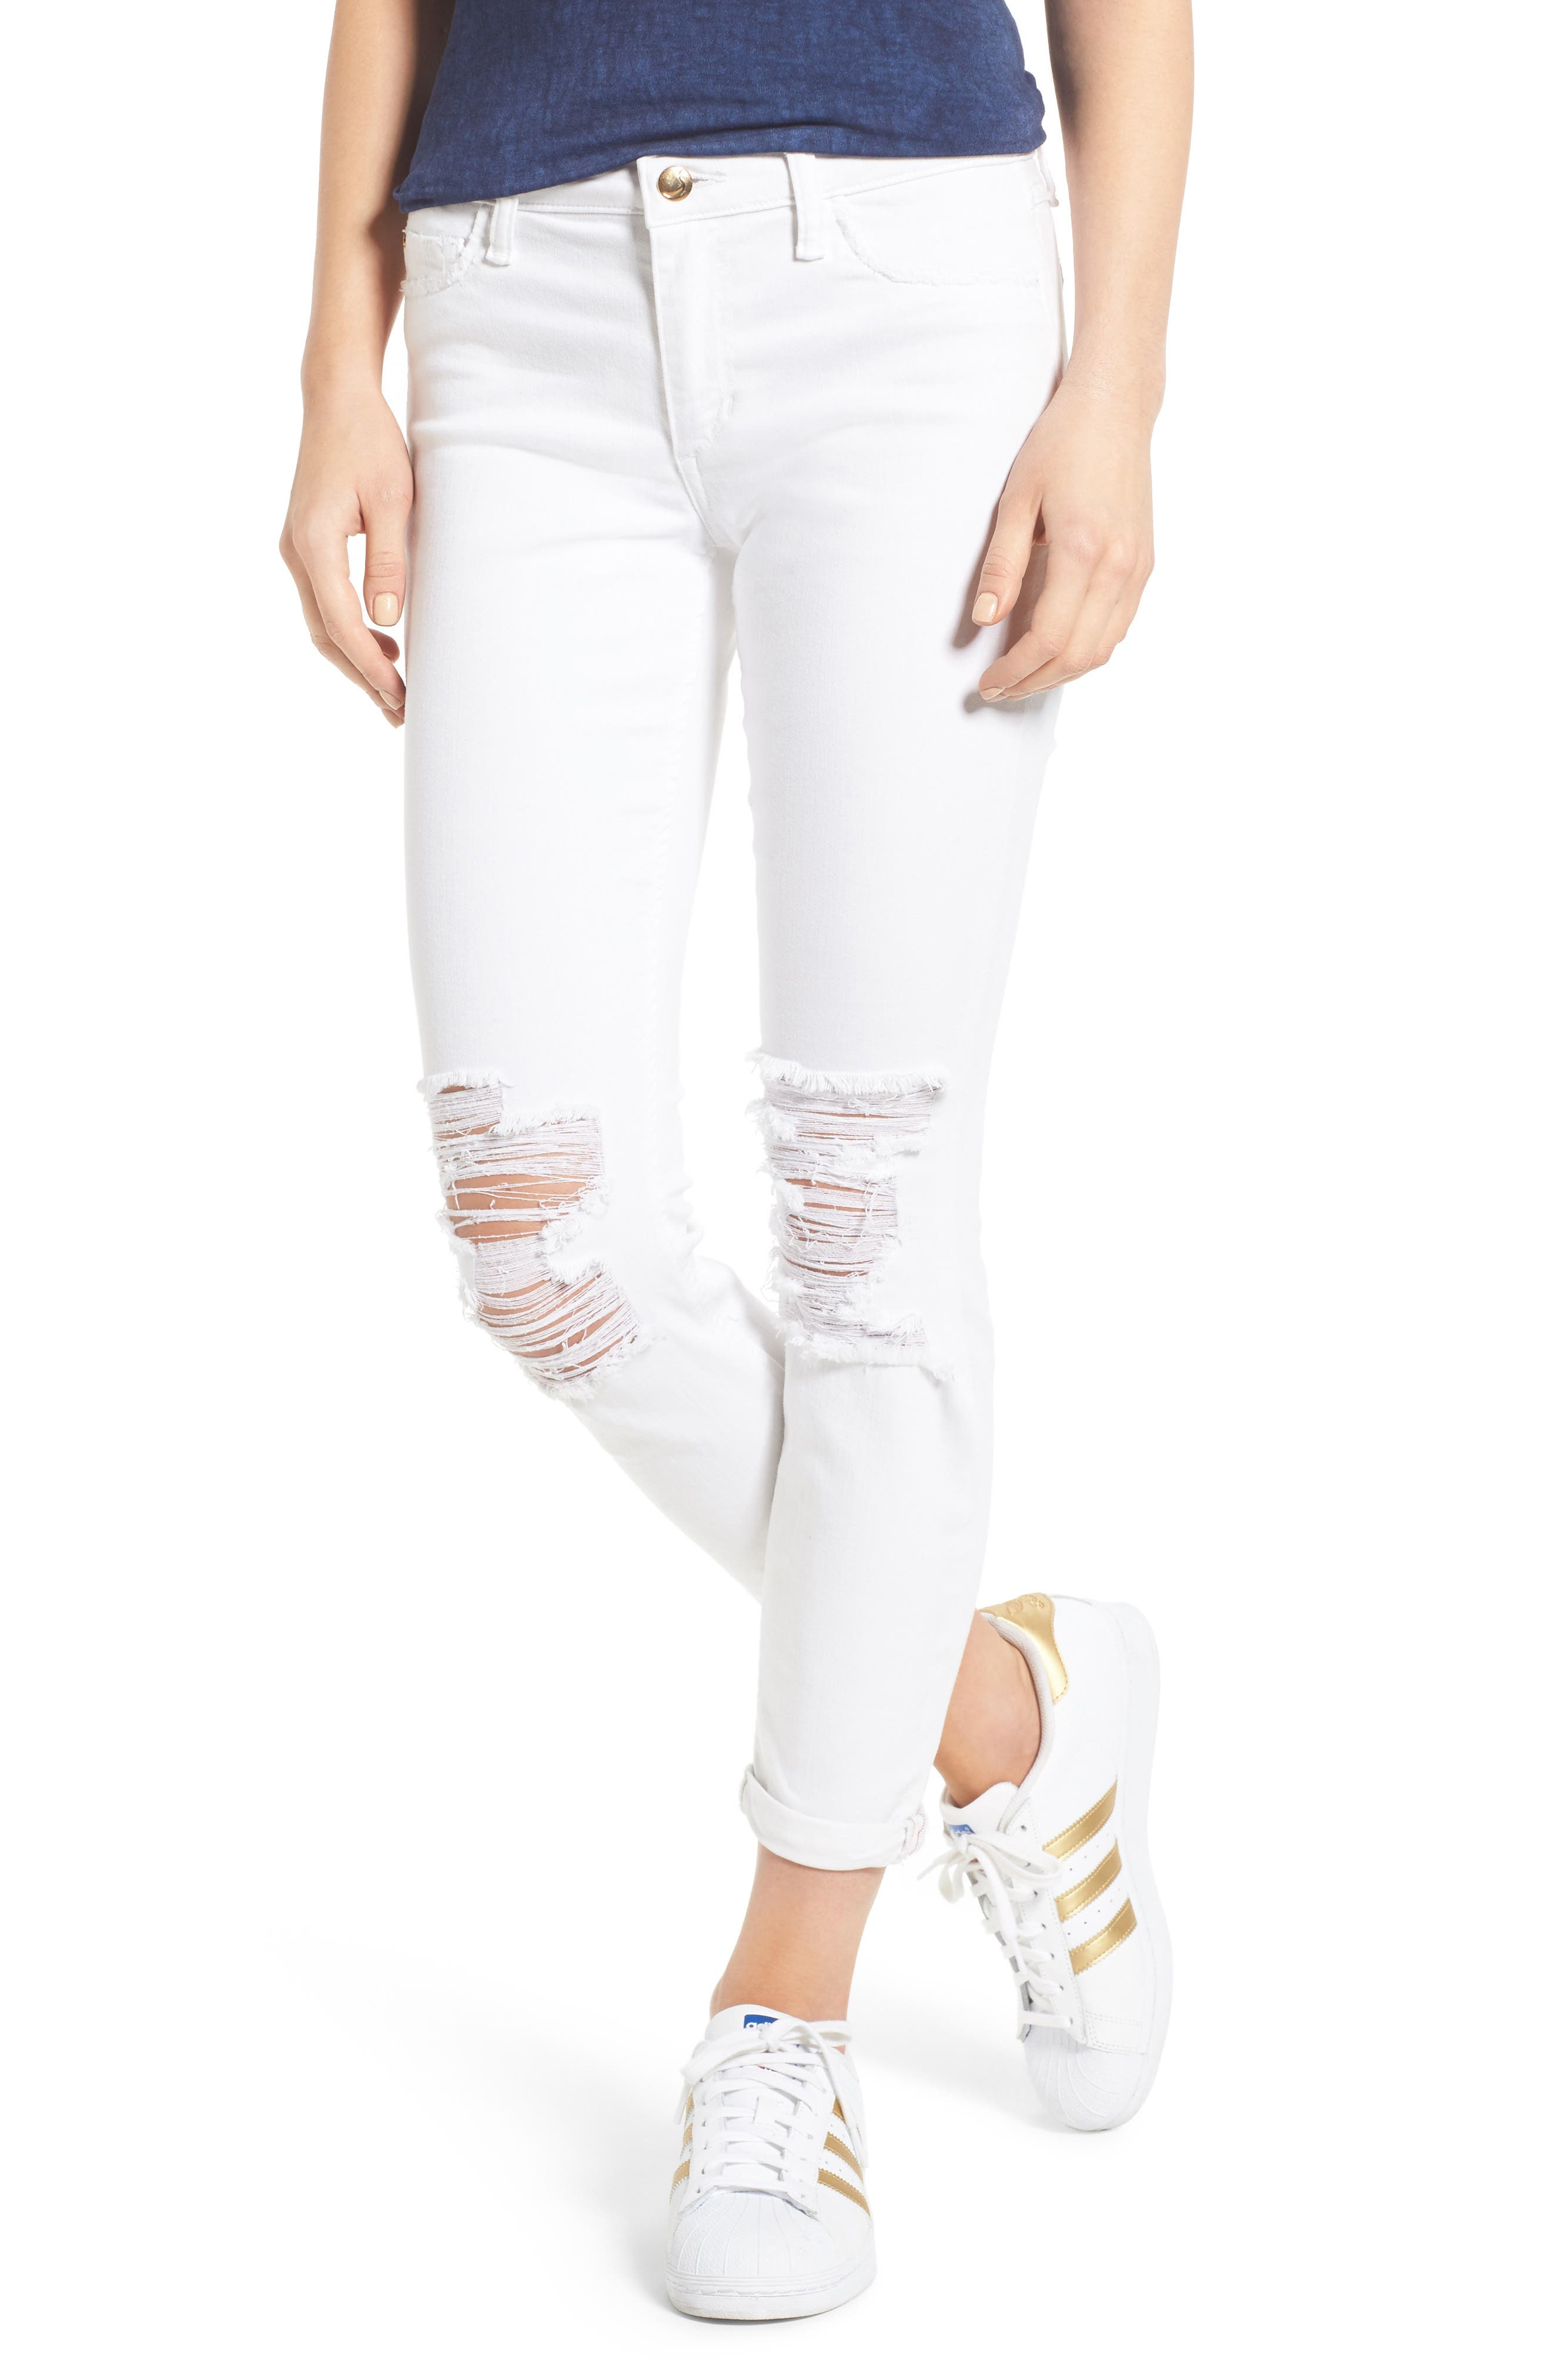 Andie Crop Skinny Jeans,                         Main,                         color, Scottie